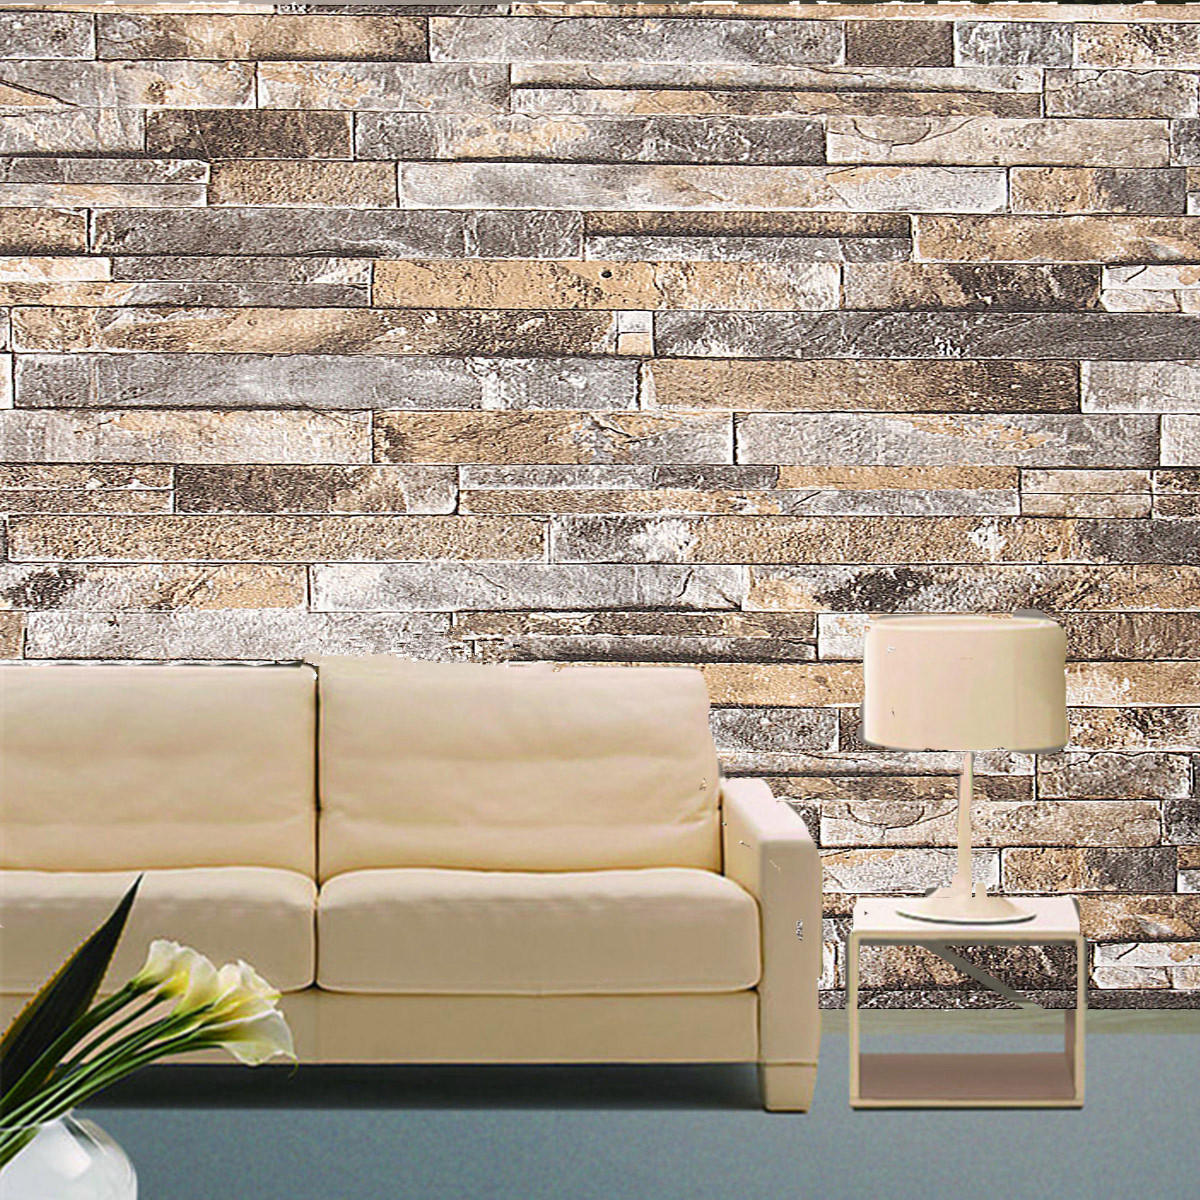 3d Wall Paper Brick Stone Pattern Vinyl Wallpaper Roll Living Room Tv Background Decor